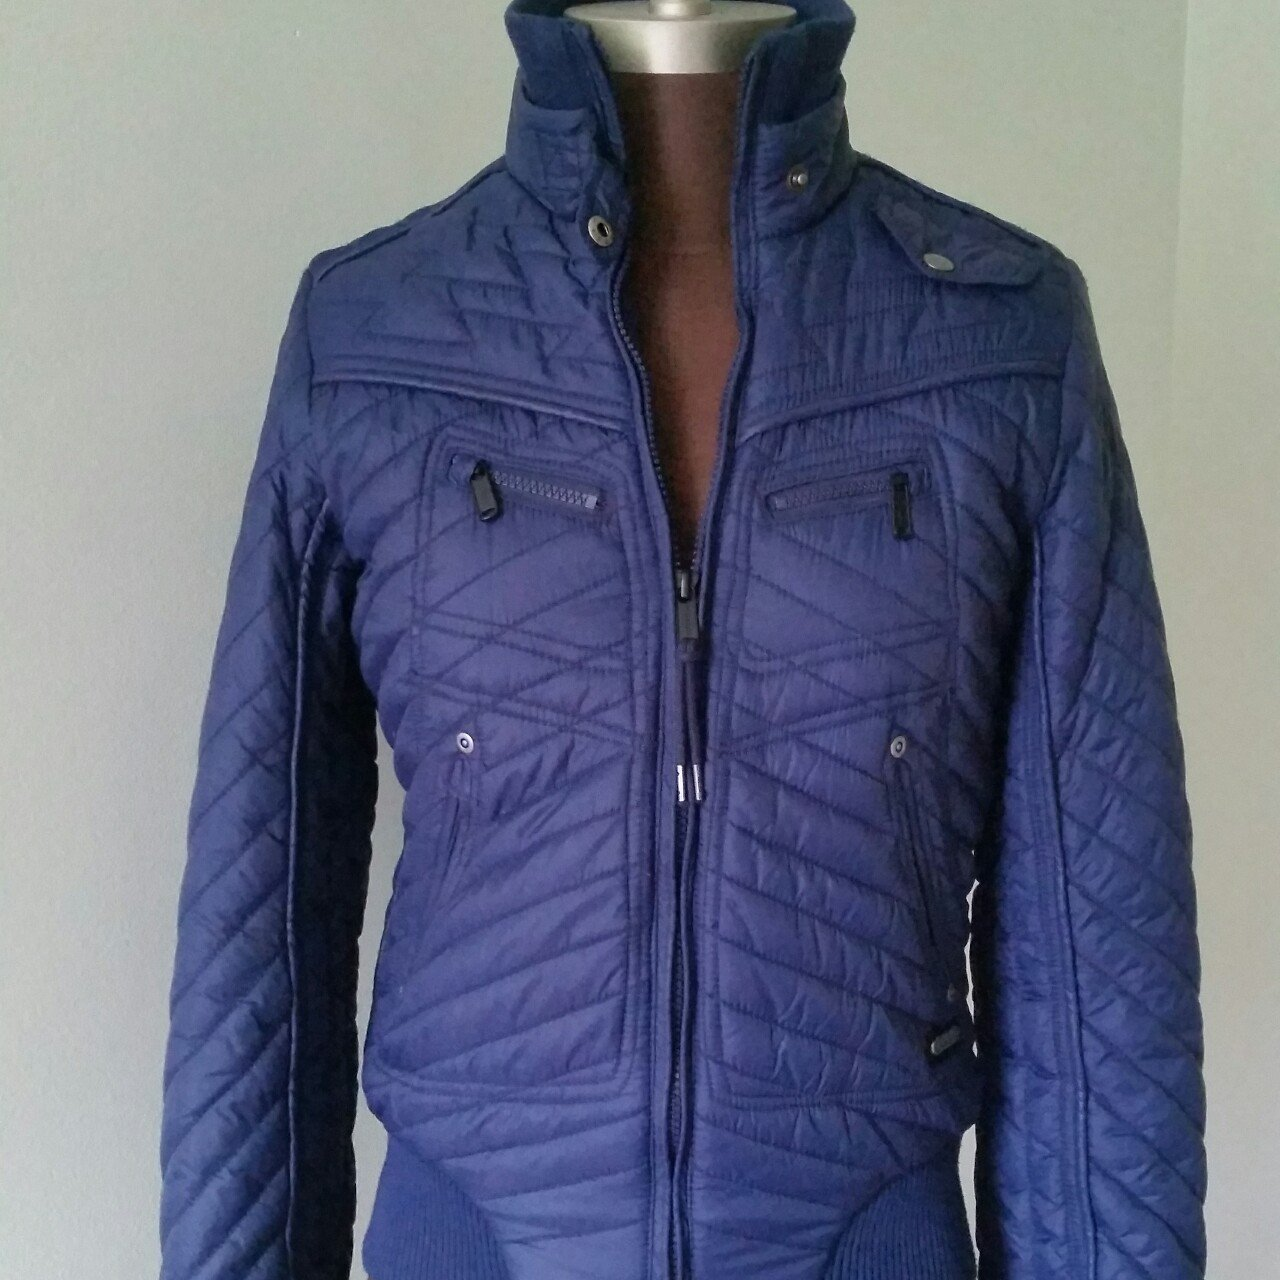 c25d29ece7ddab Tommy Hilfiger quilted navy puffer